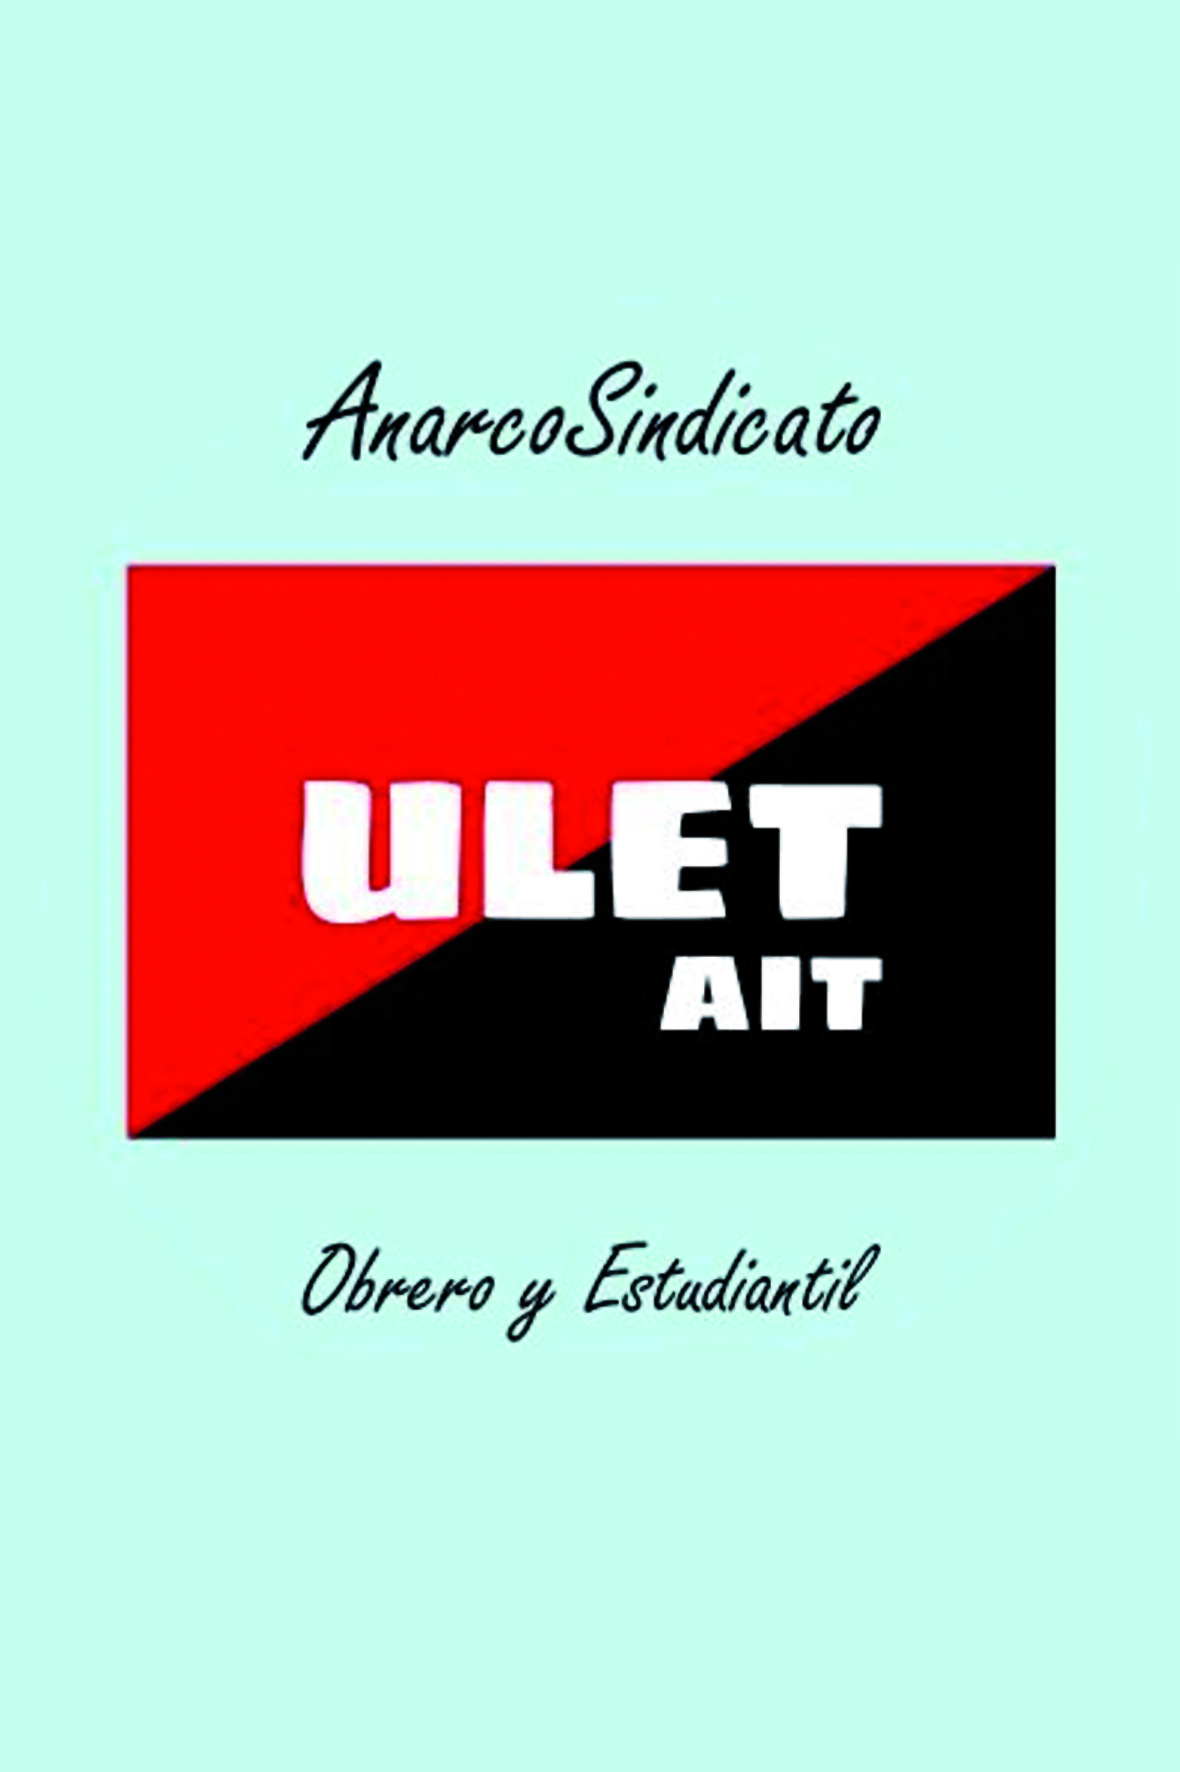 Commication from Colombia's ULET (AIT) | Statement